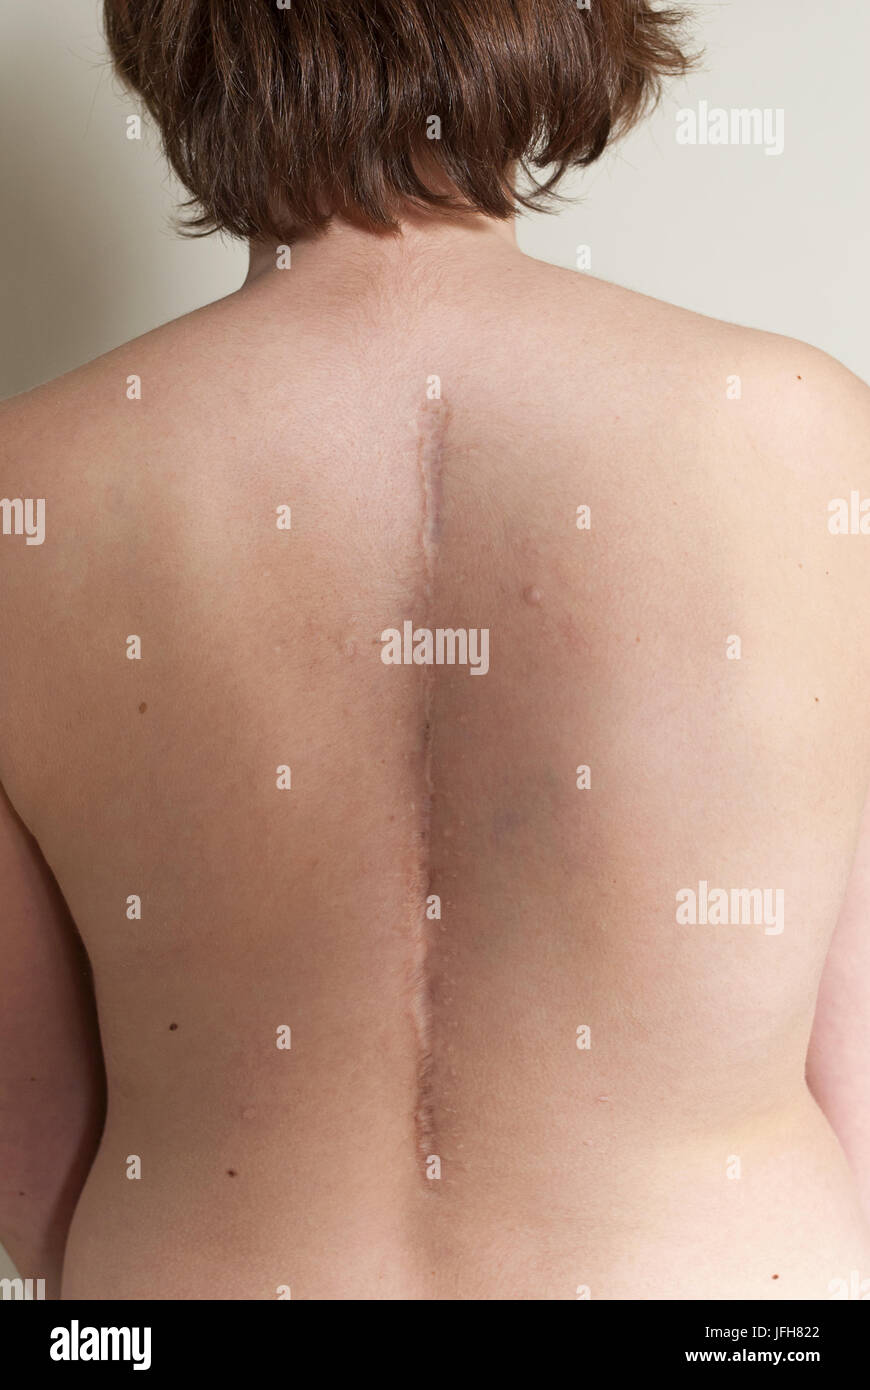 Back Woman with scar from scoliosis Op - Stock Image